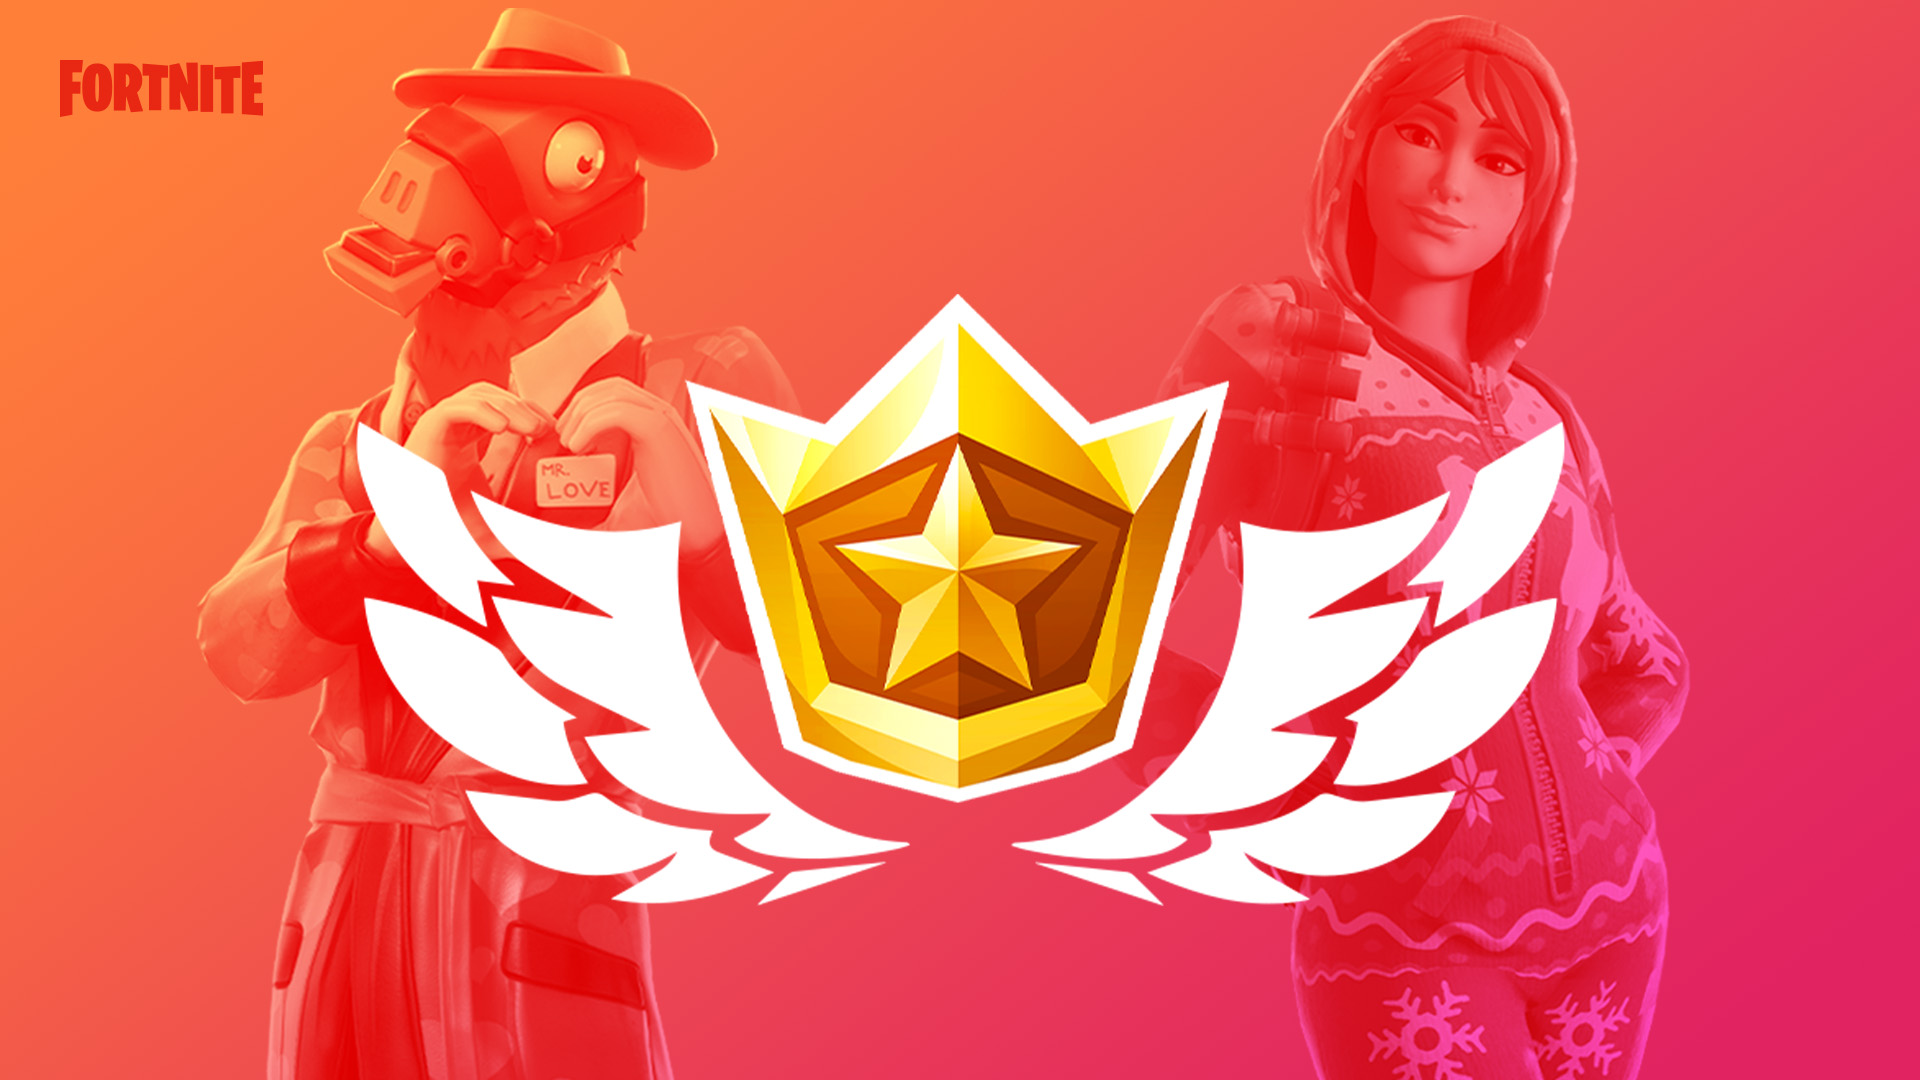 Want To Get The Fortnite Season 8 Battle Pass For Free Just